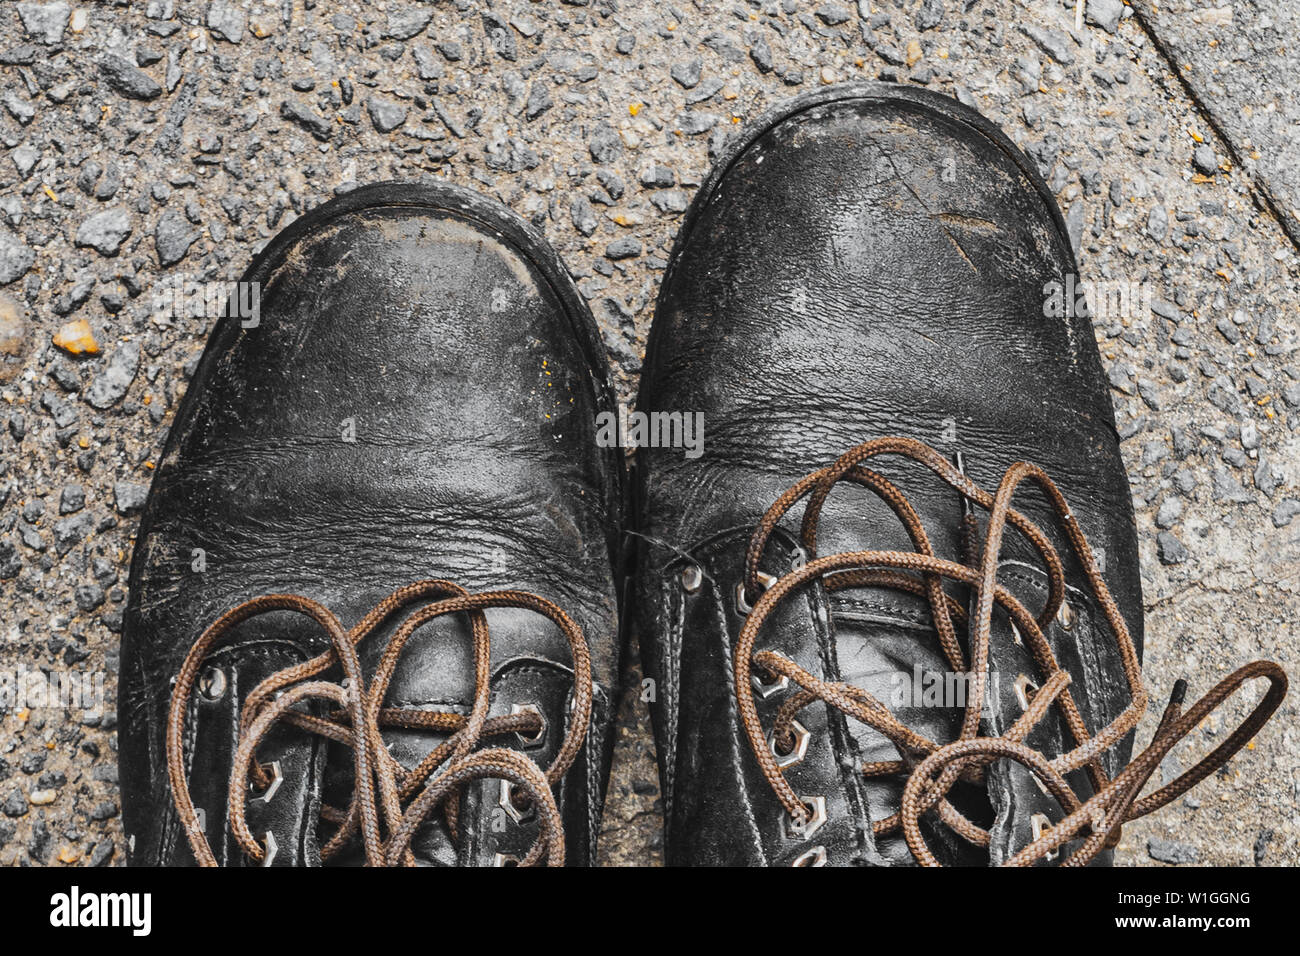 the best attitude f536e 3e357 Zement Schuhe Stockfotos & Zement Schuhe Bilder - Alamy